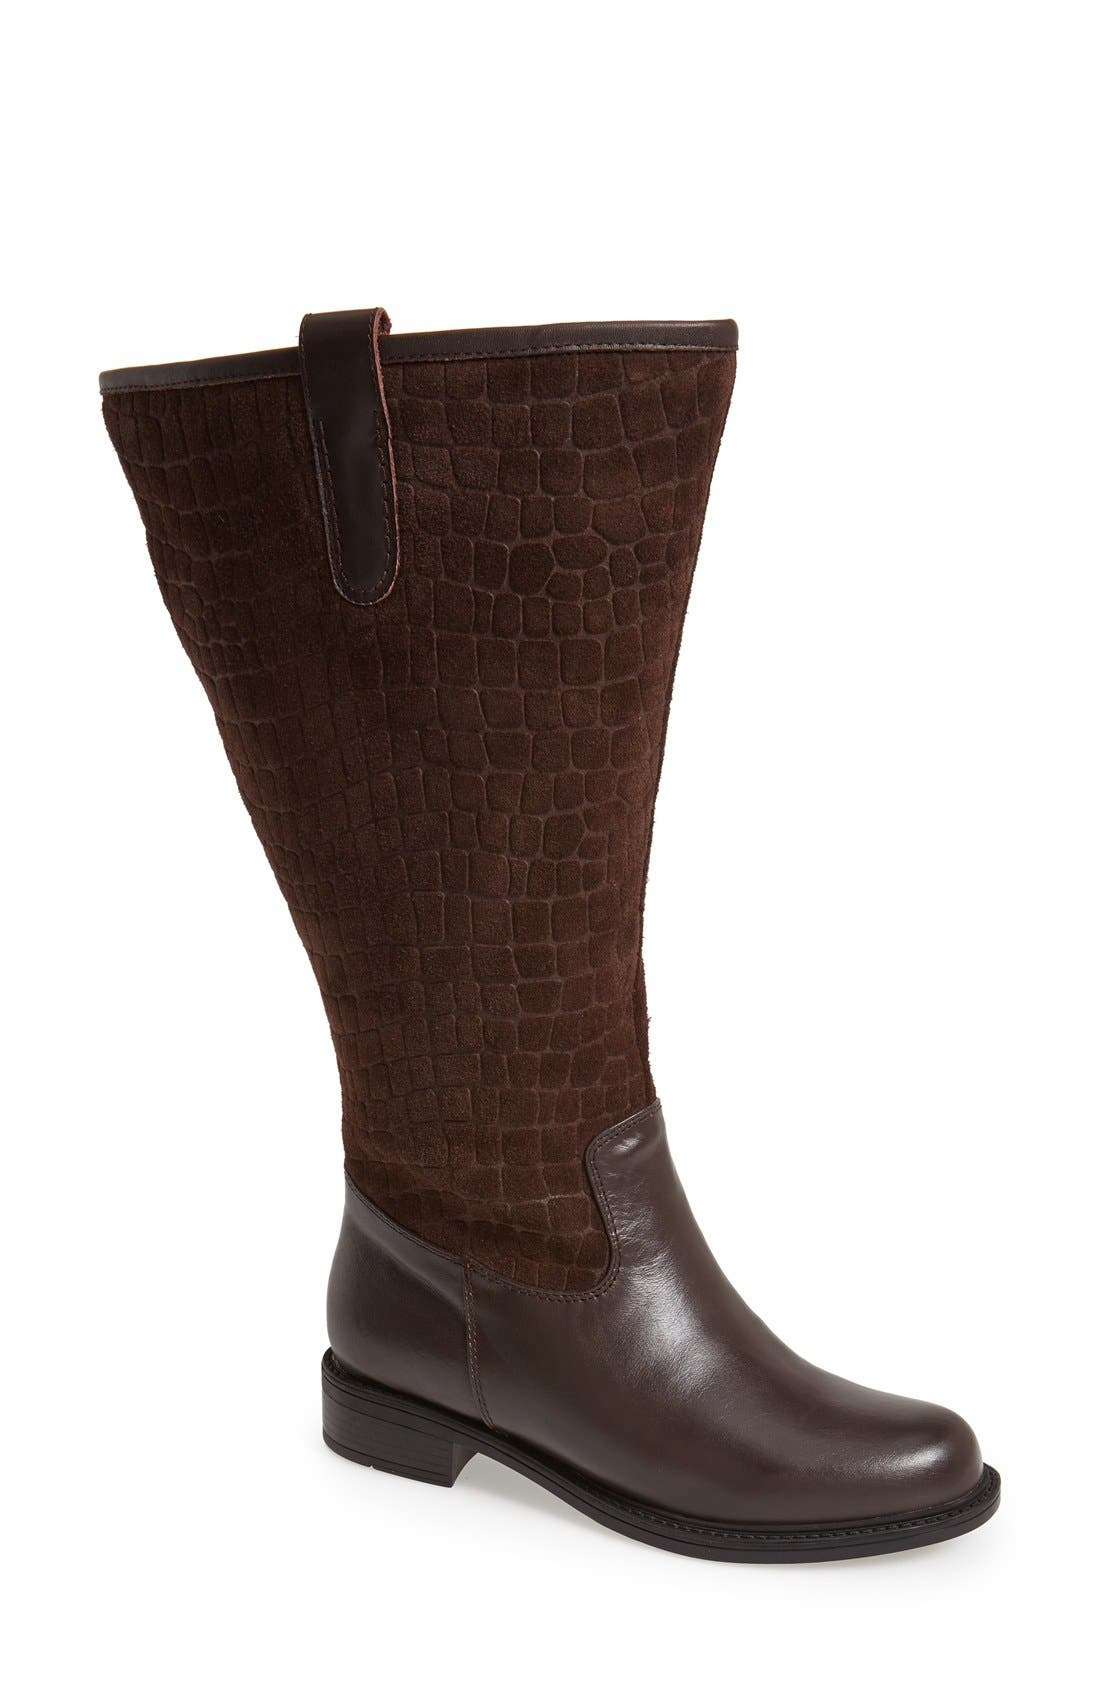 david tate best calfskin leather suede boot